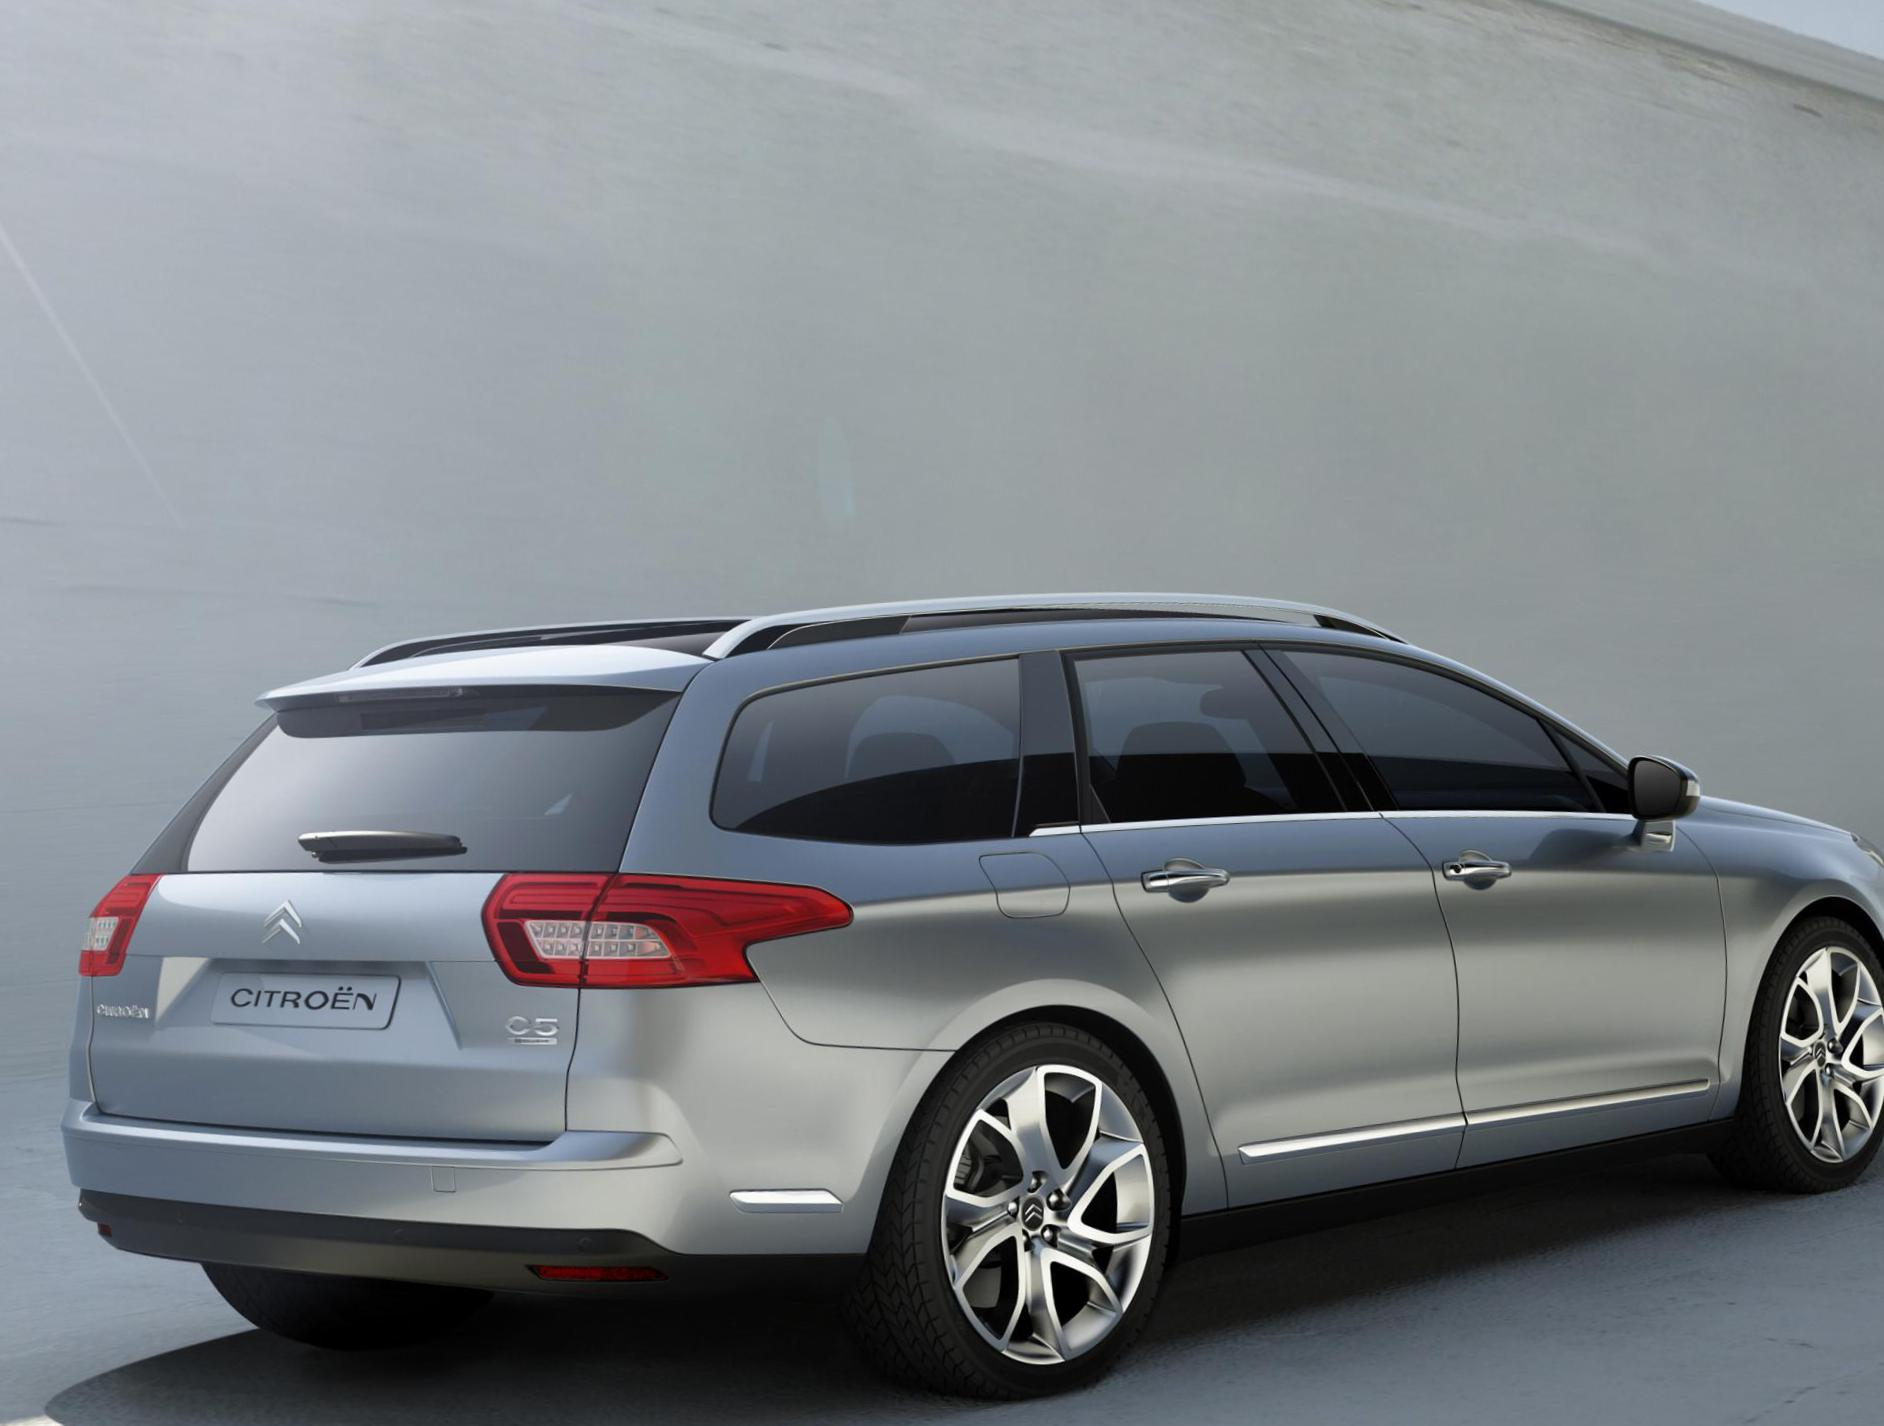 Citroen C5 approved 2013